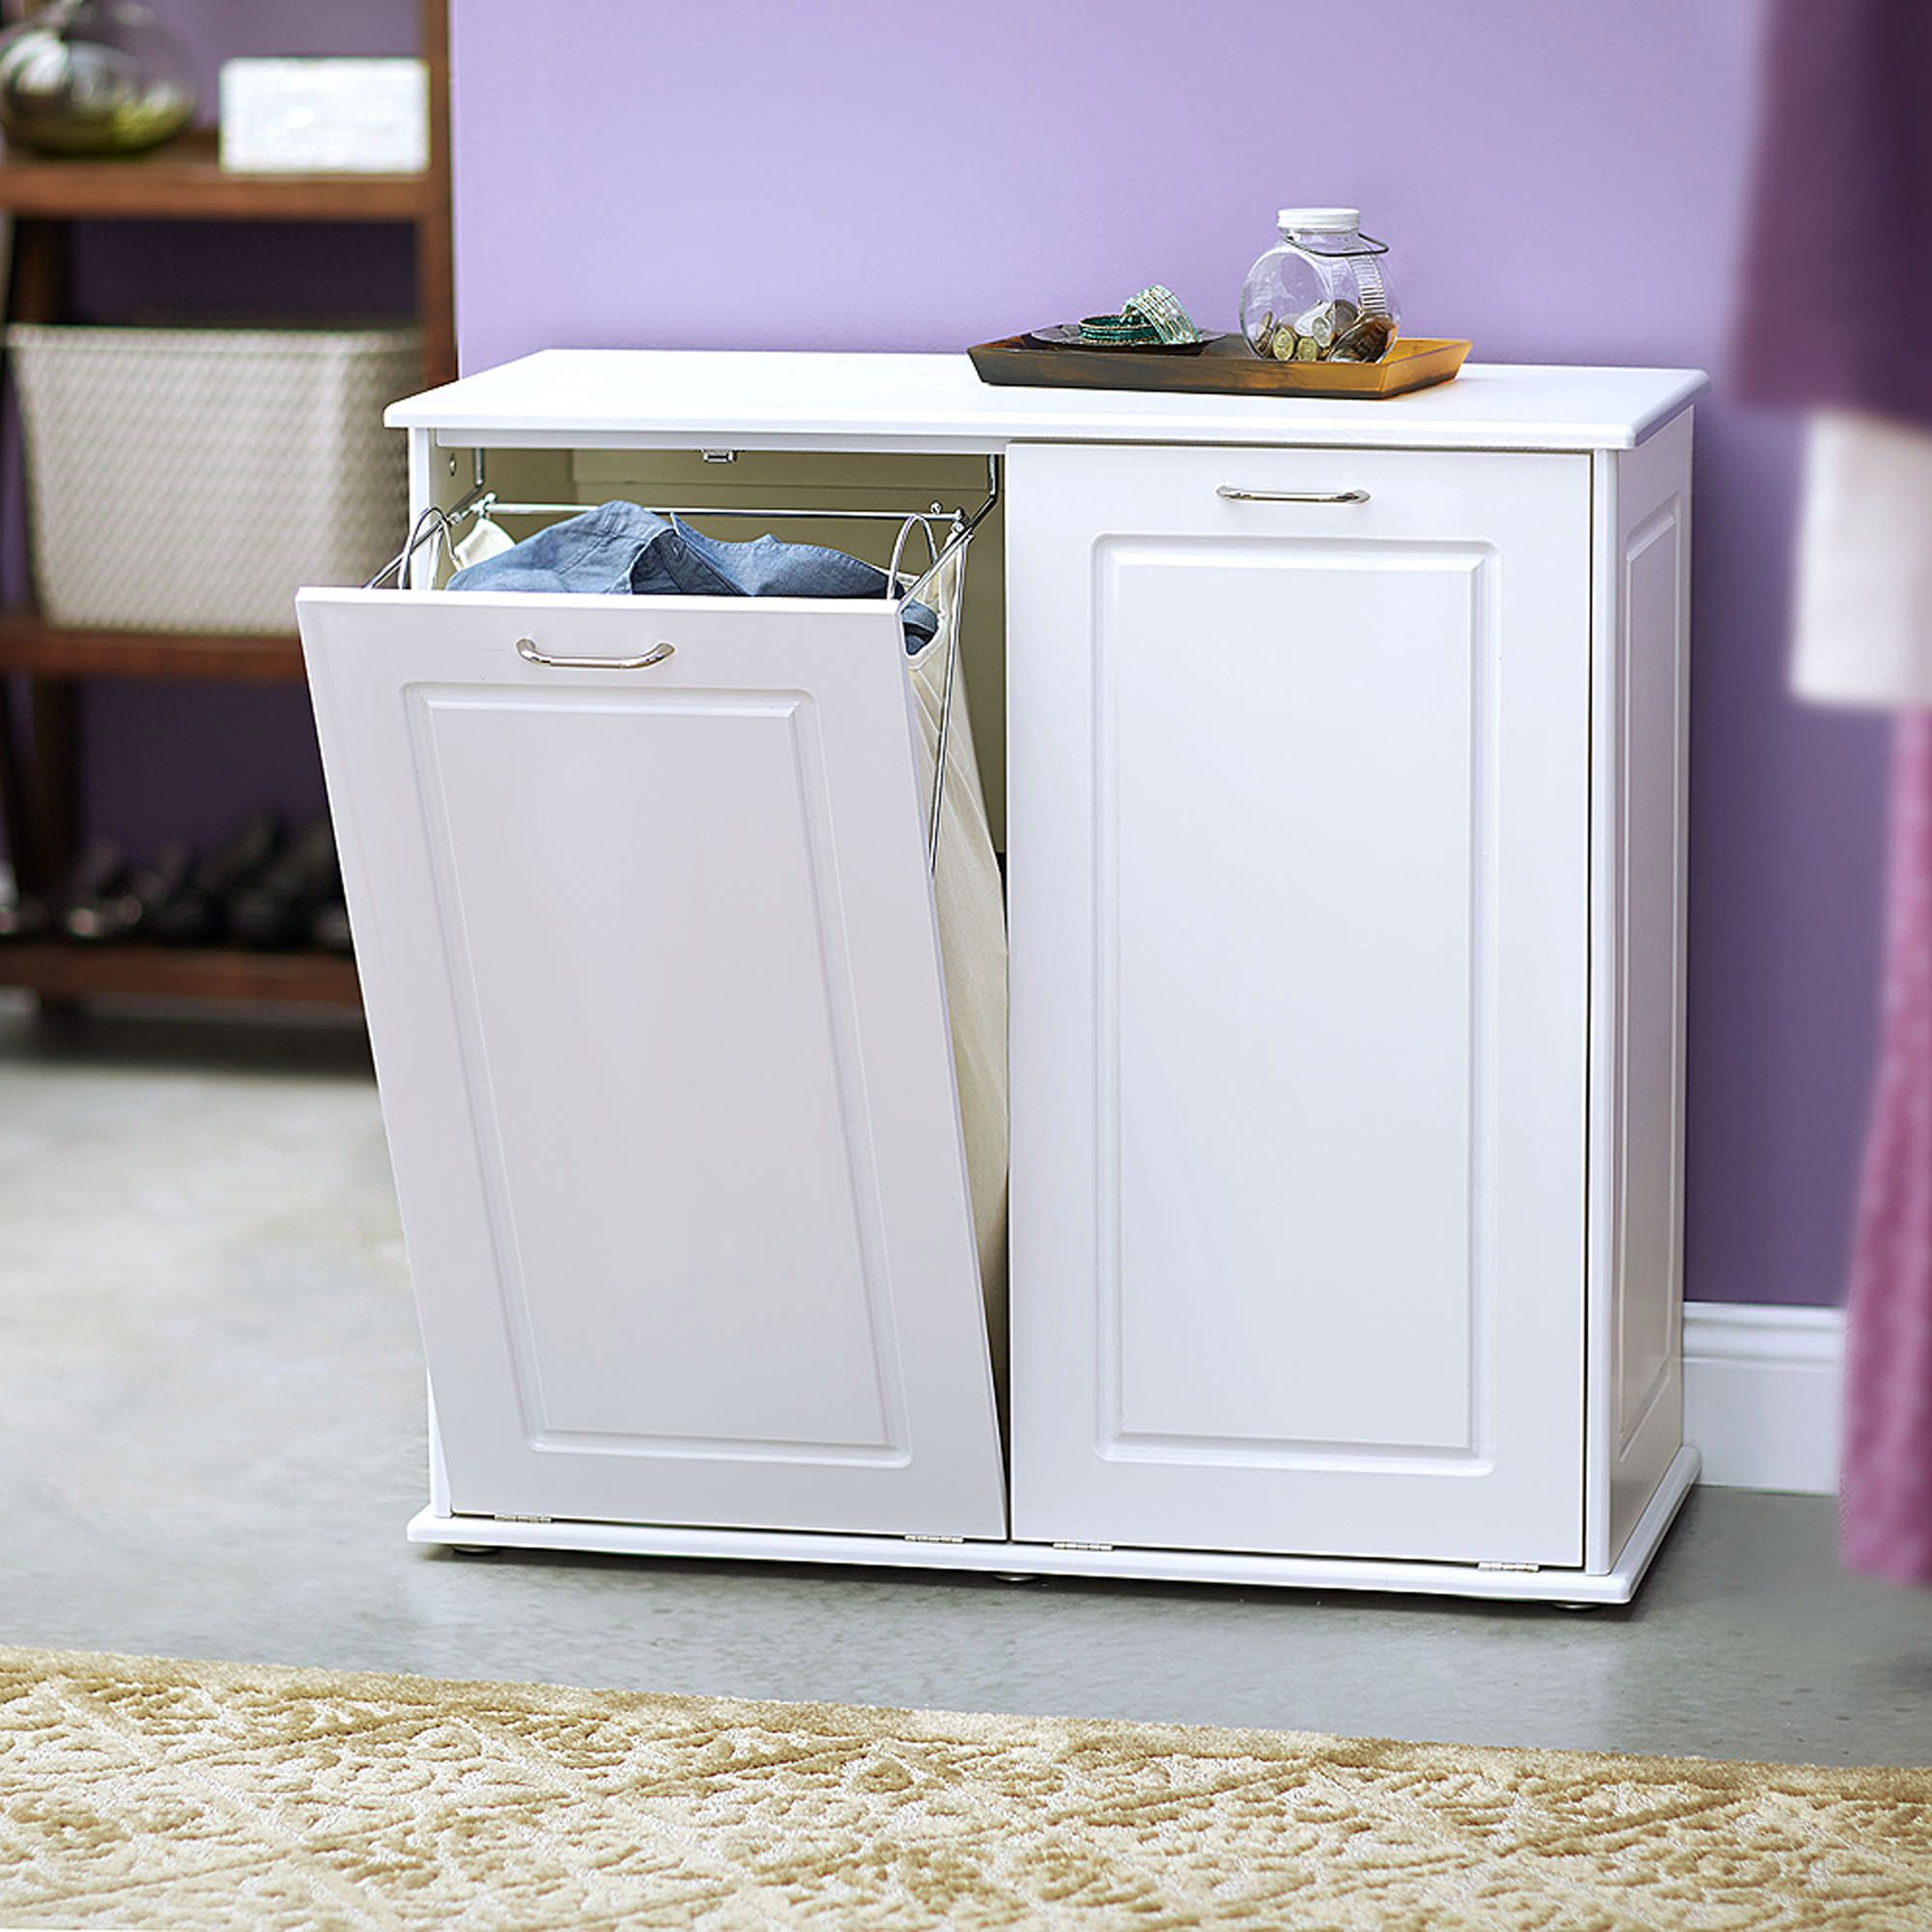 Image result for built in laundry sorter | gorgeous laundry rooms ...